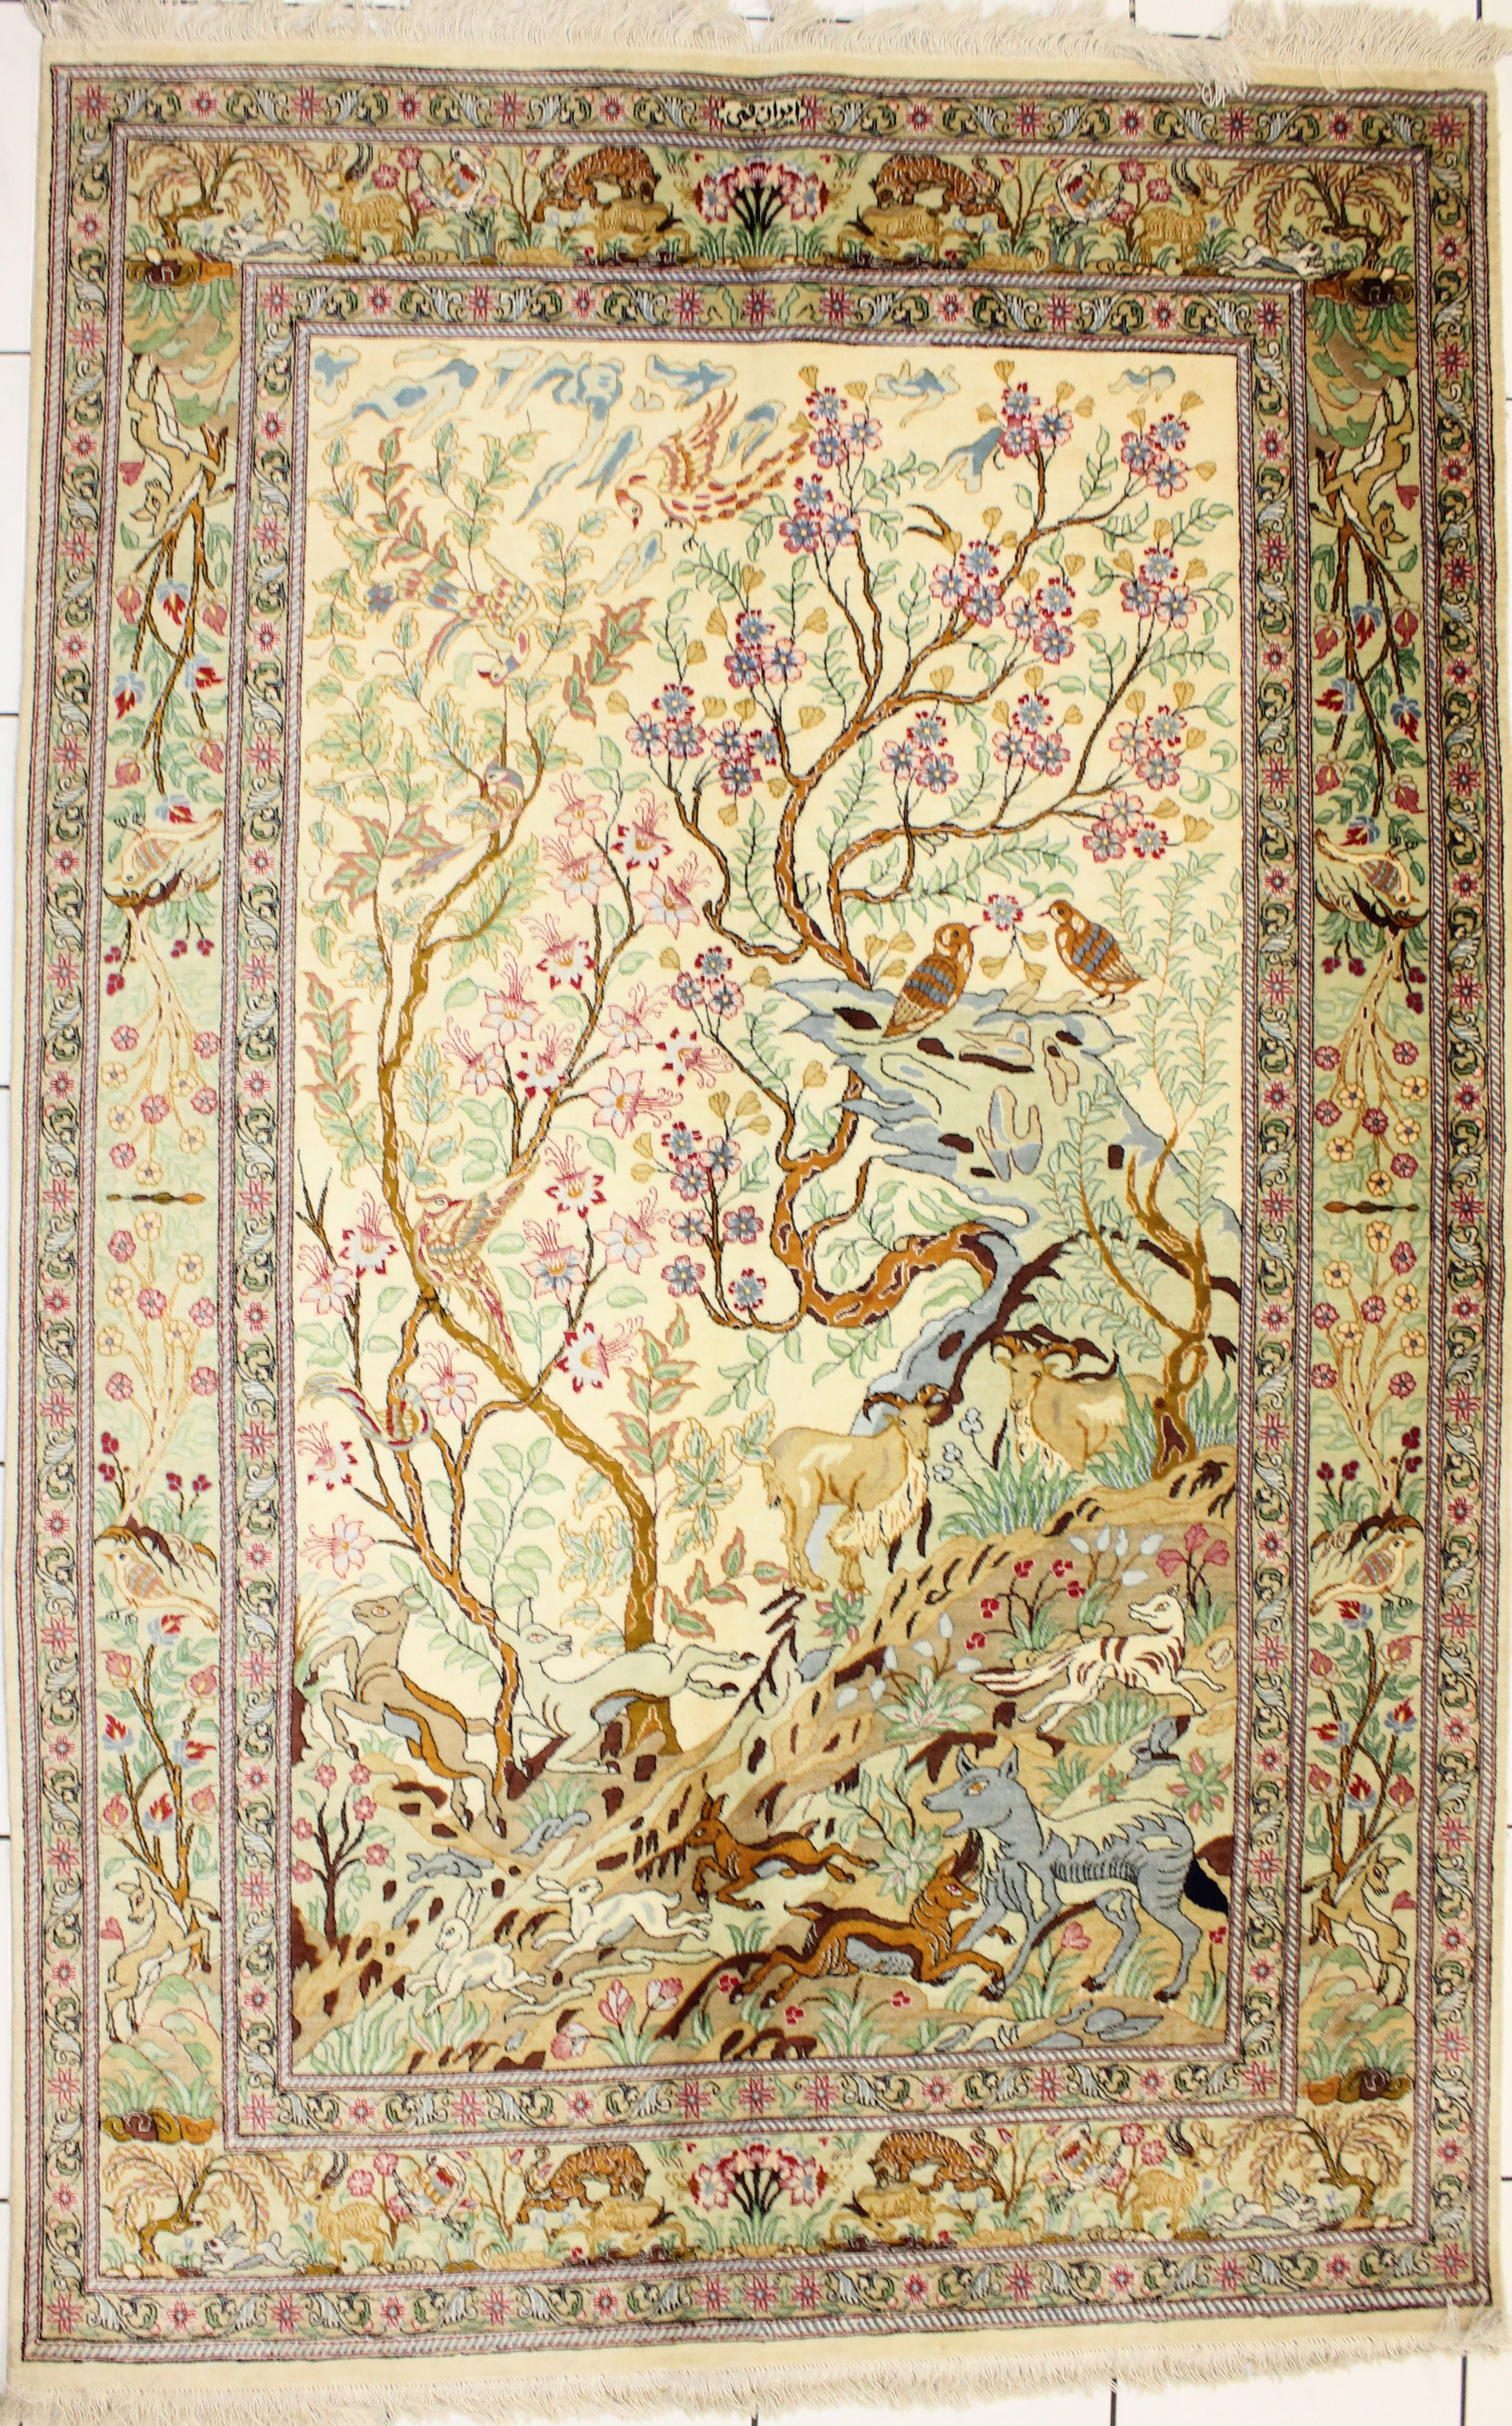 Hanging Rugs Persian Reflections Tapestry Wall Hanging Set Blankets